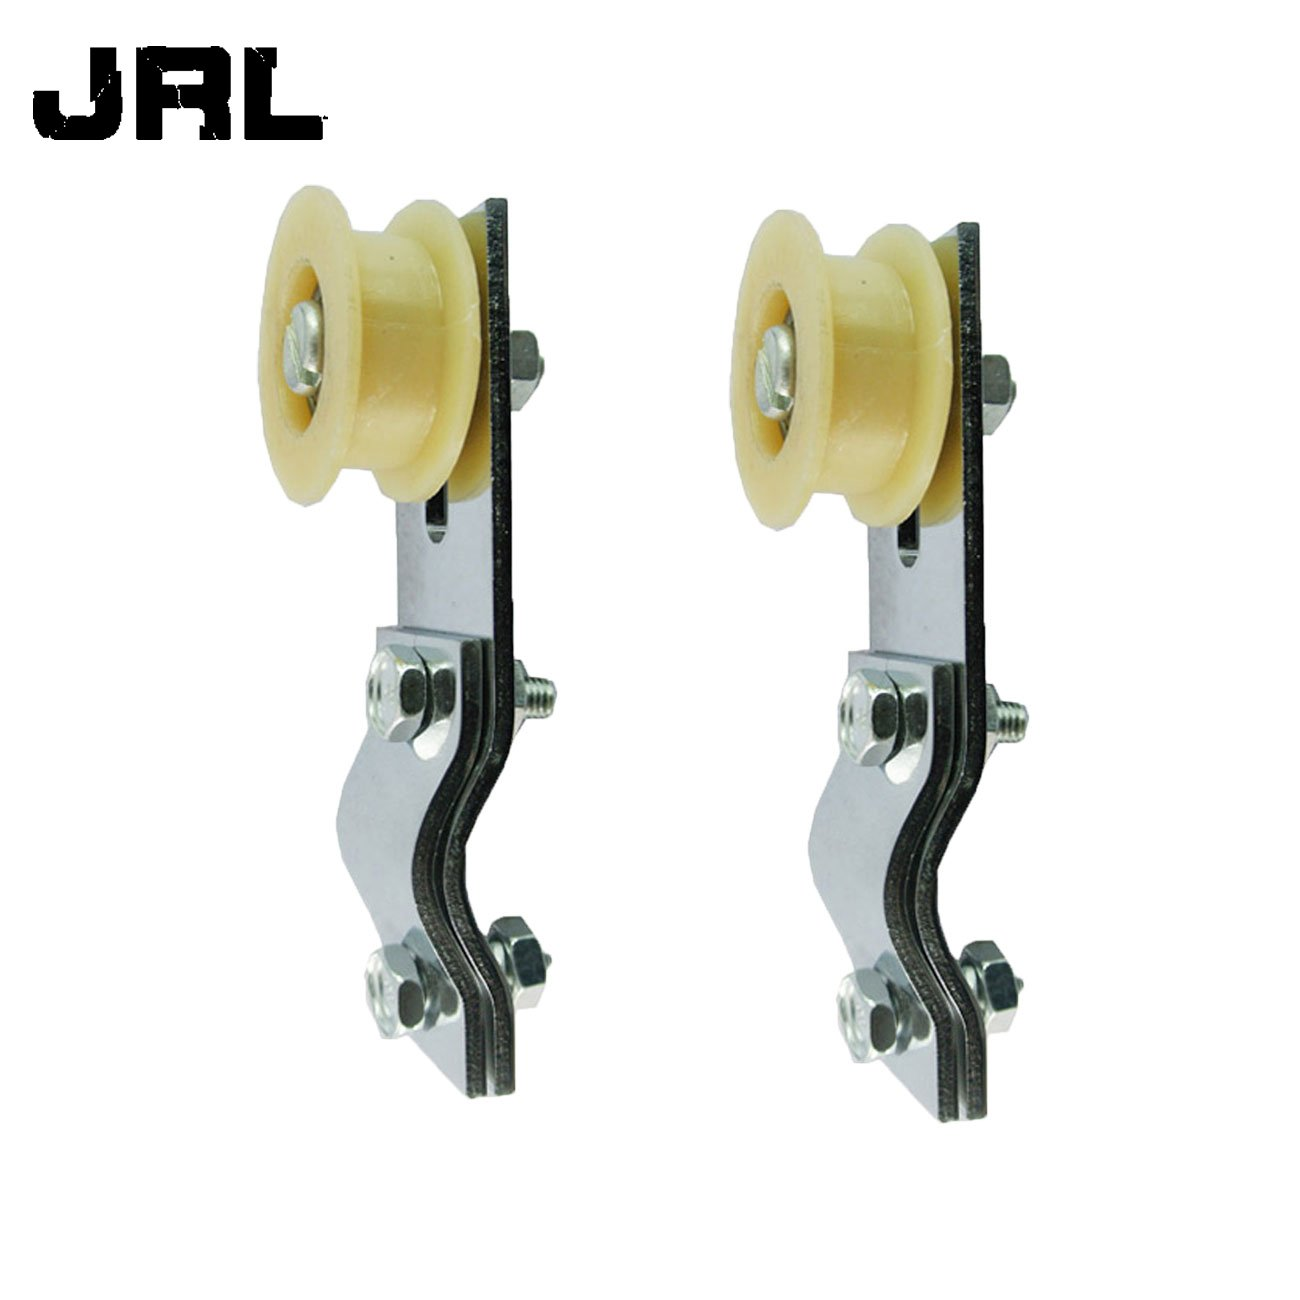 JRL Pully Chain Adjuster Tensioner Bracket Fits 66cc 80cc Engine Motorized Bicycle